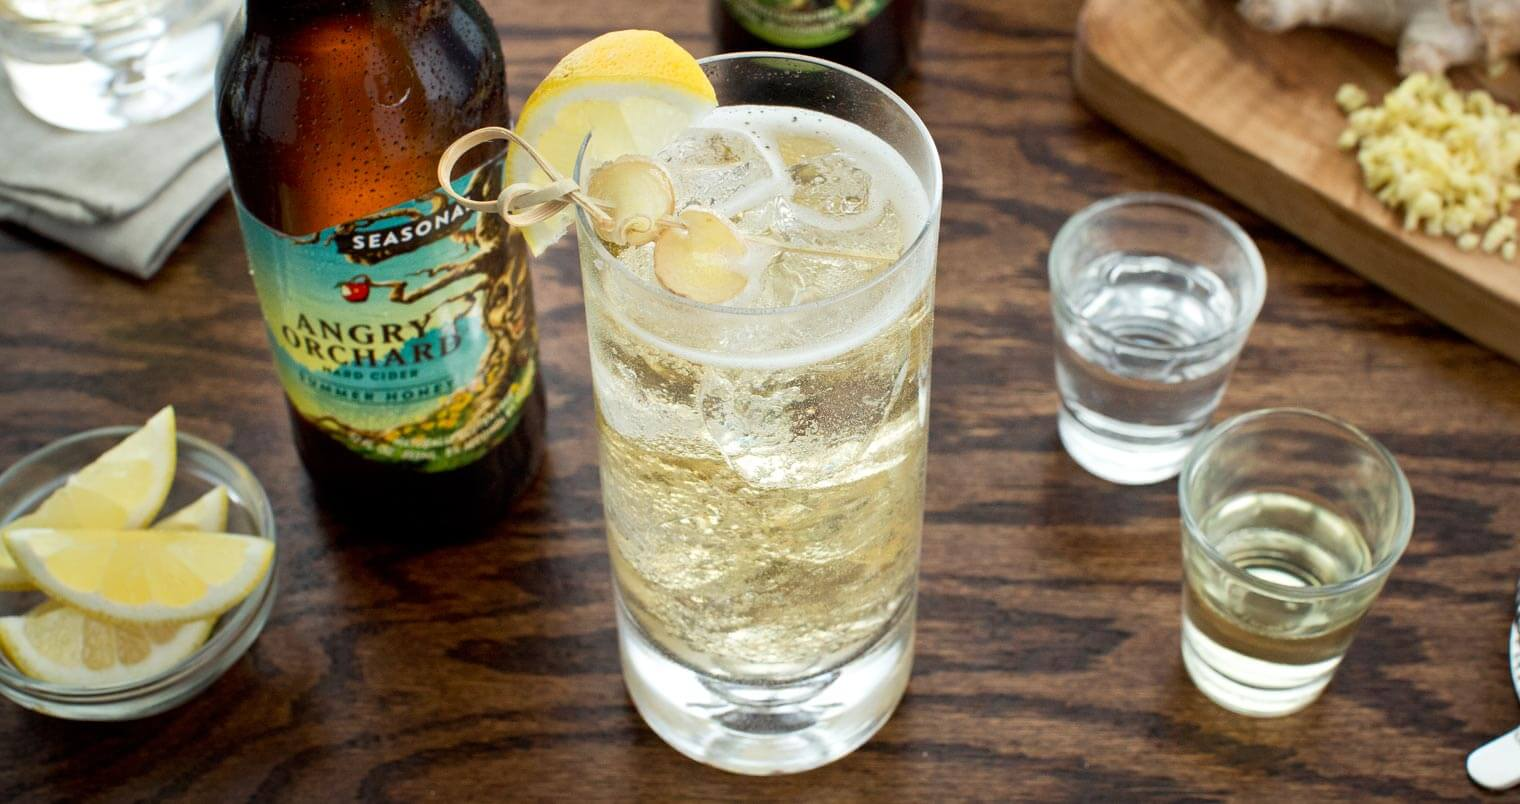 Angry Orchard Hard Cider Cocktails, angry orchard hard cider, featured image, cocktails